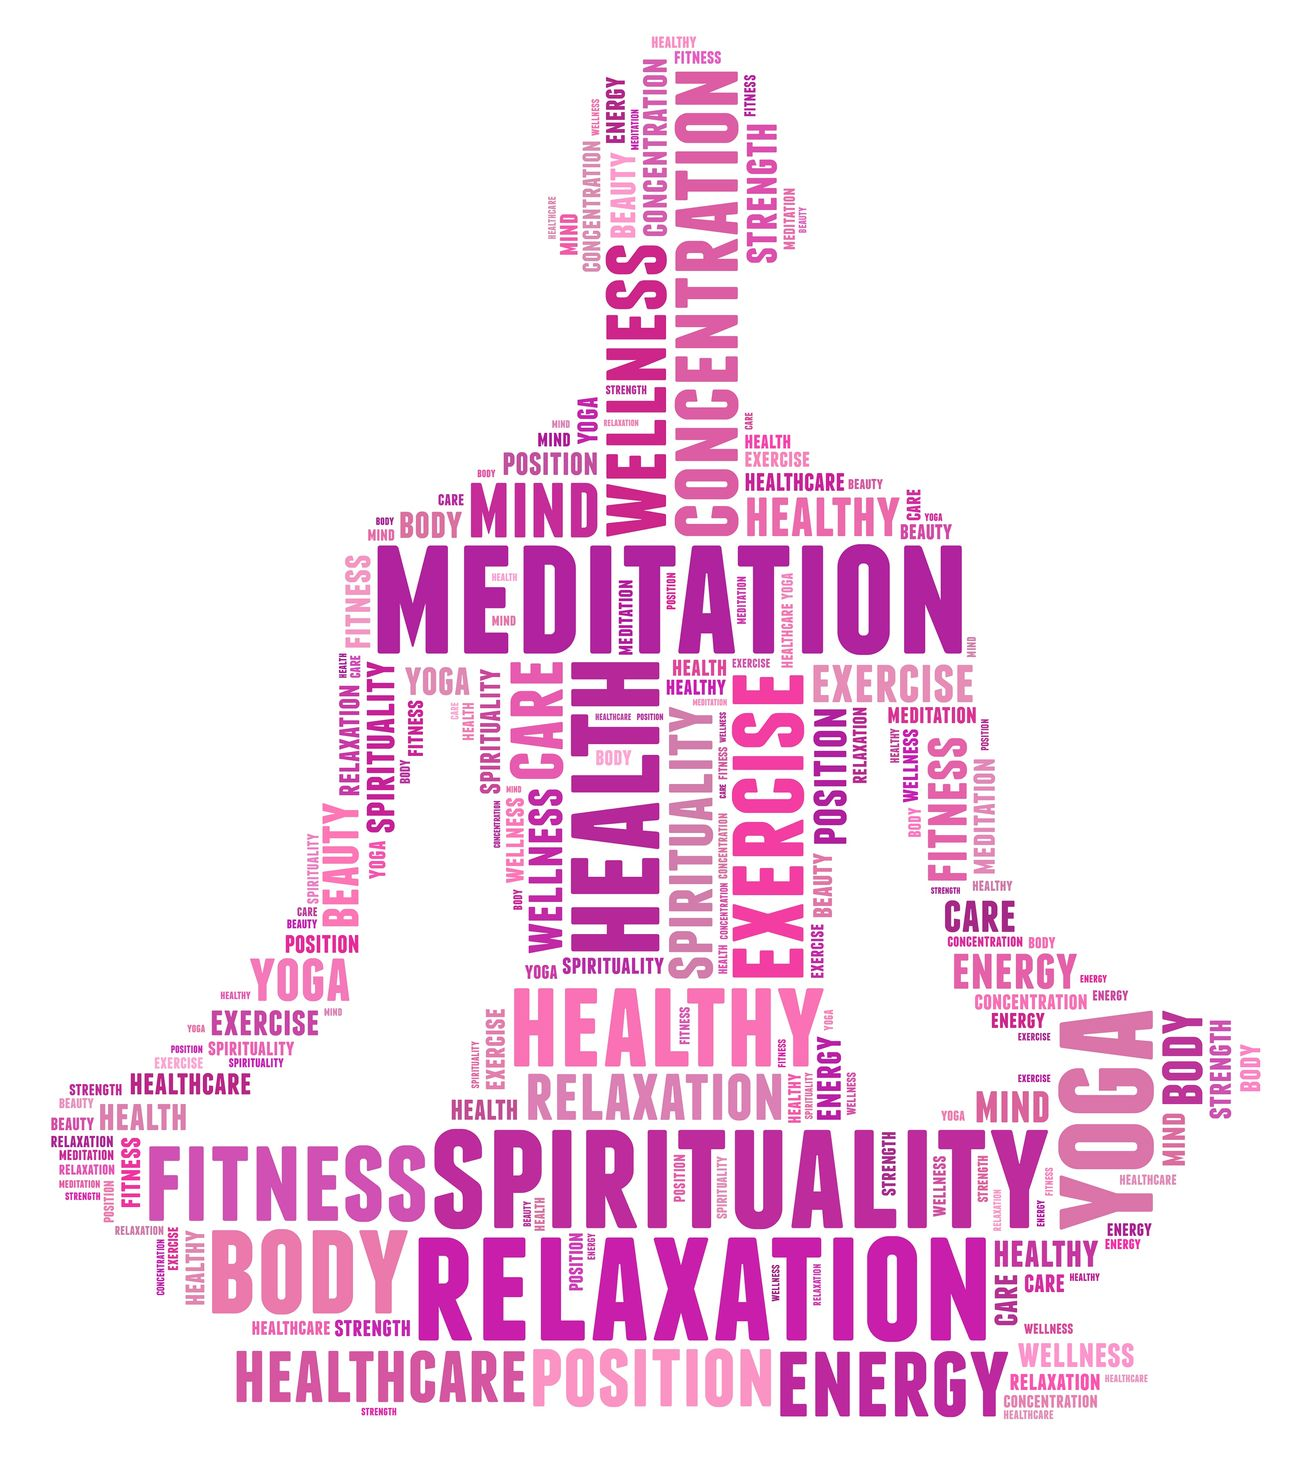 Meditation Posture, https://www.info-on-high-blood-pressure.com/Guided-Meditation.html